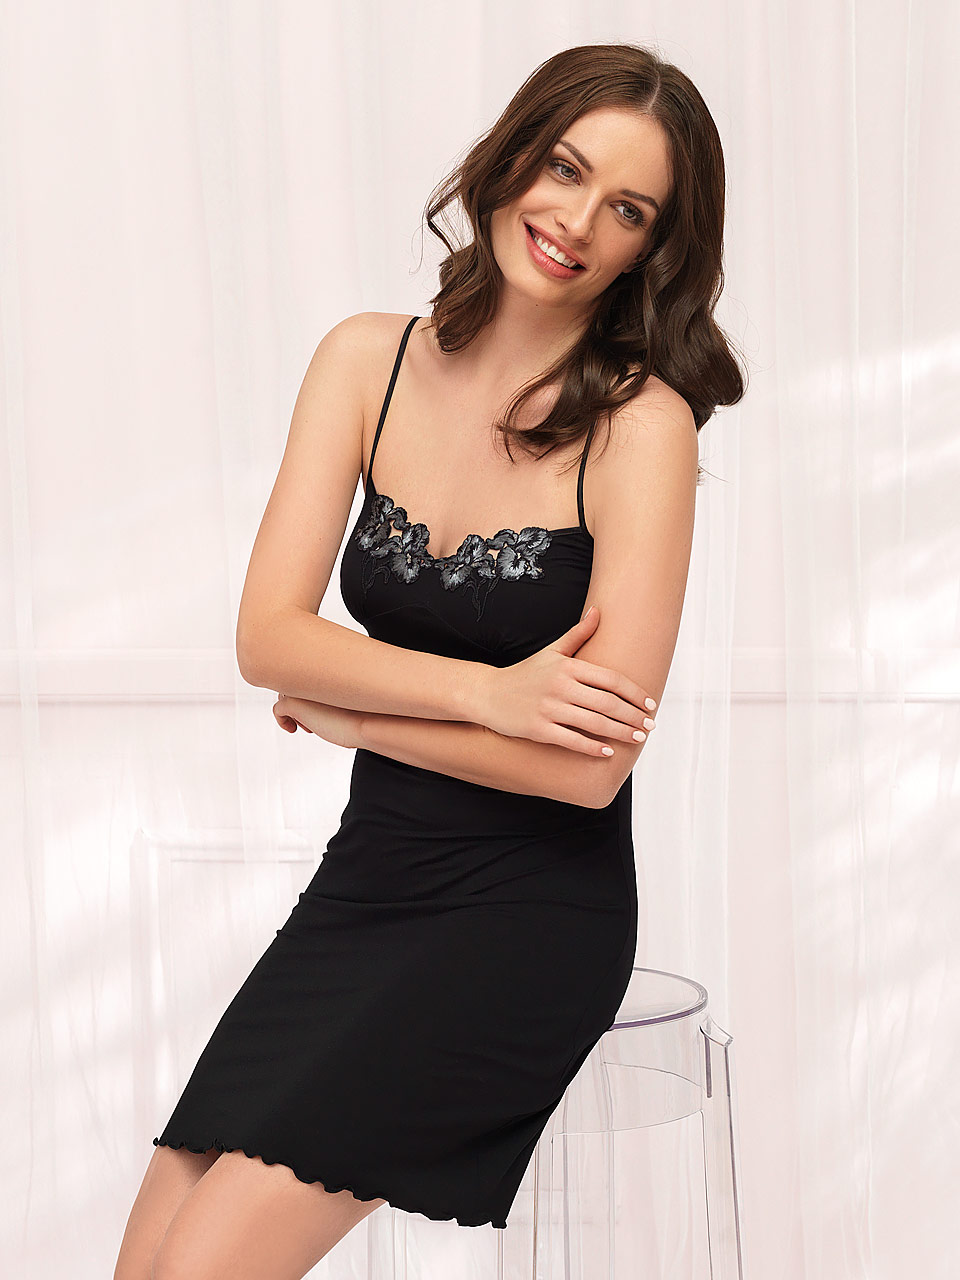 FD / Winter 2811 Chemise<br />01 Ivory, 02 Black, 06 Plum, 28 Cappuccino